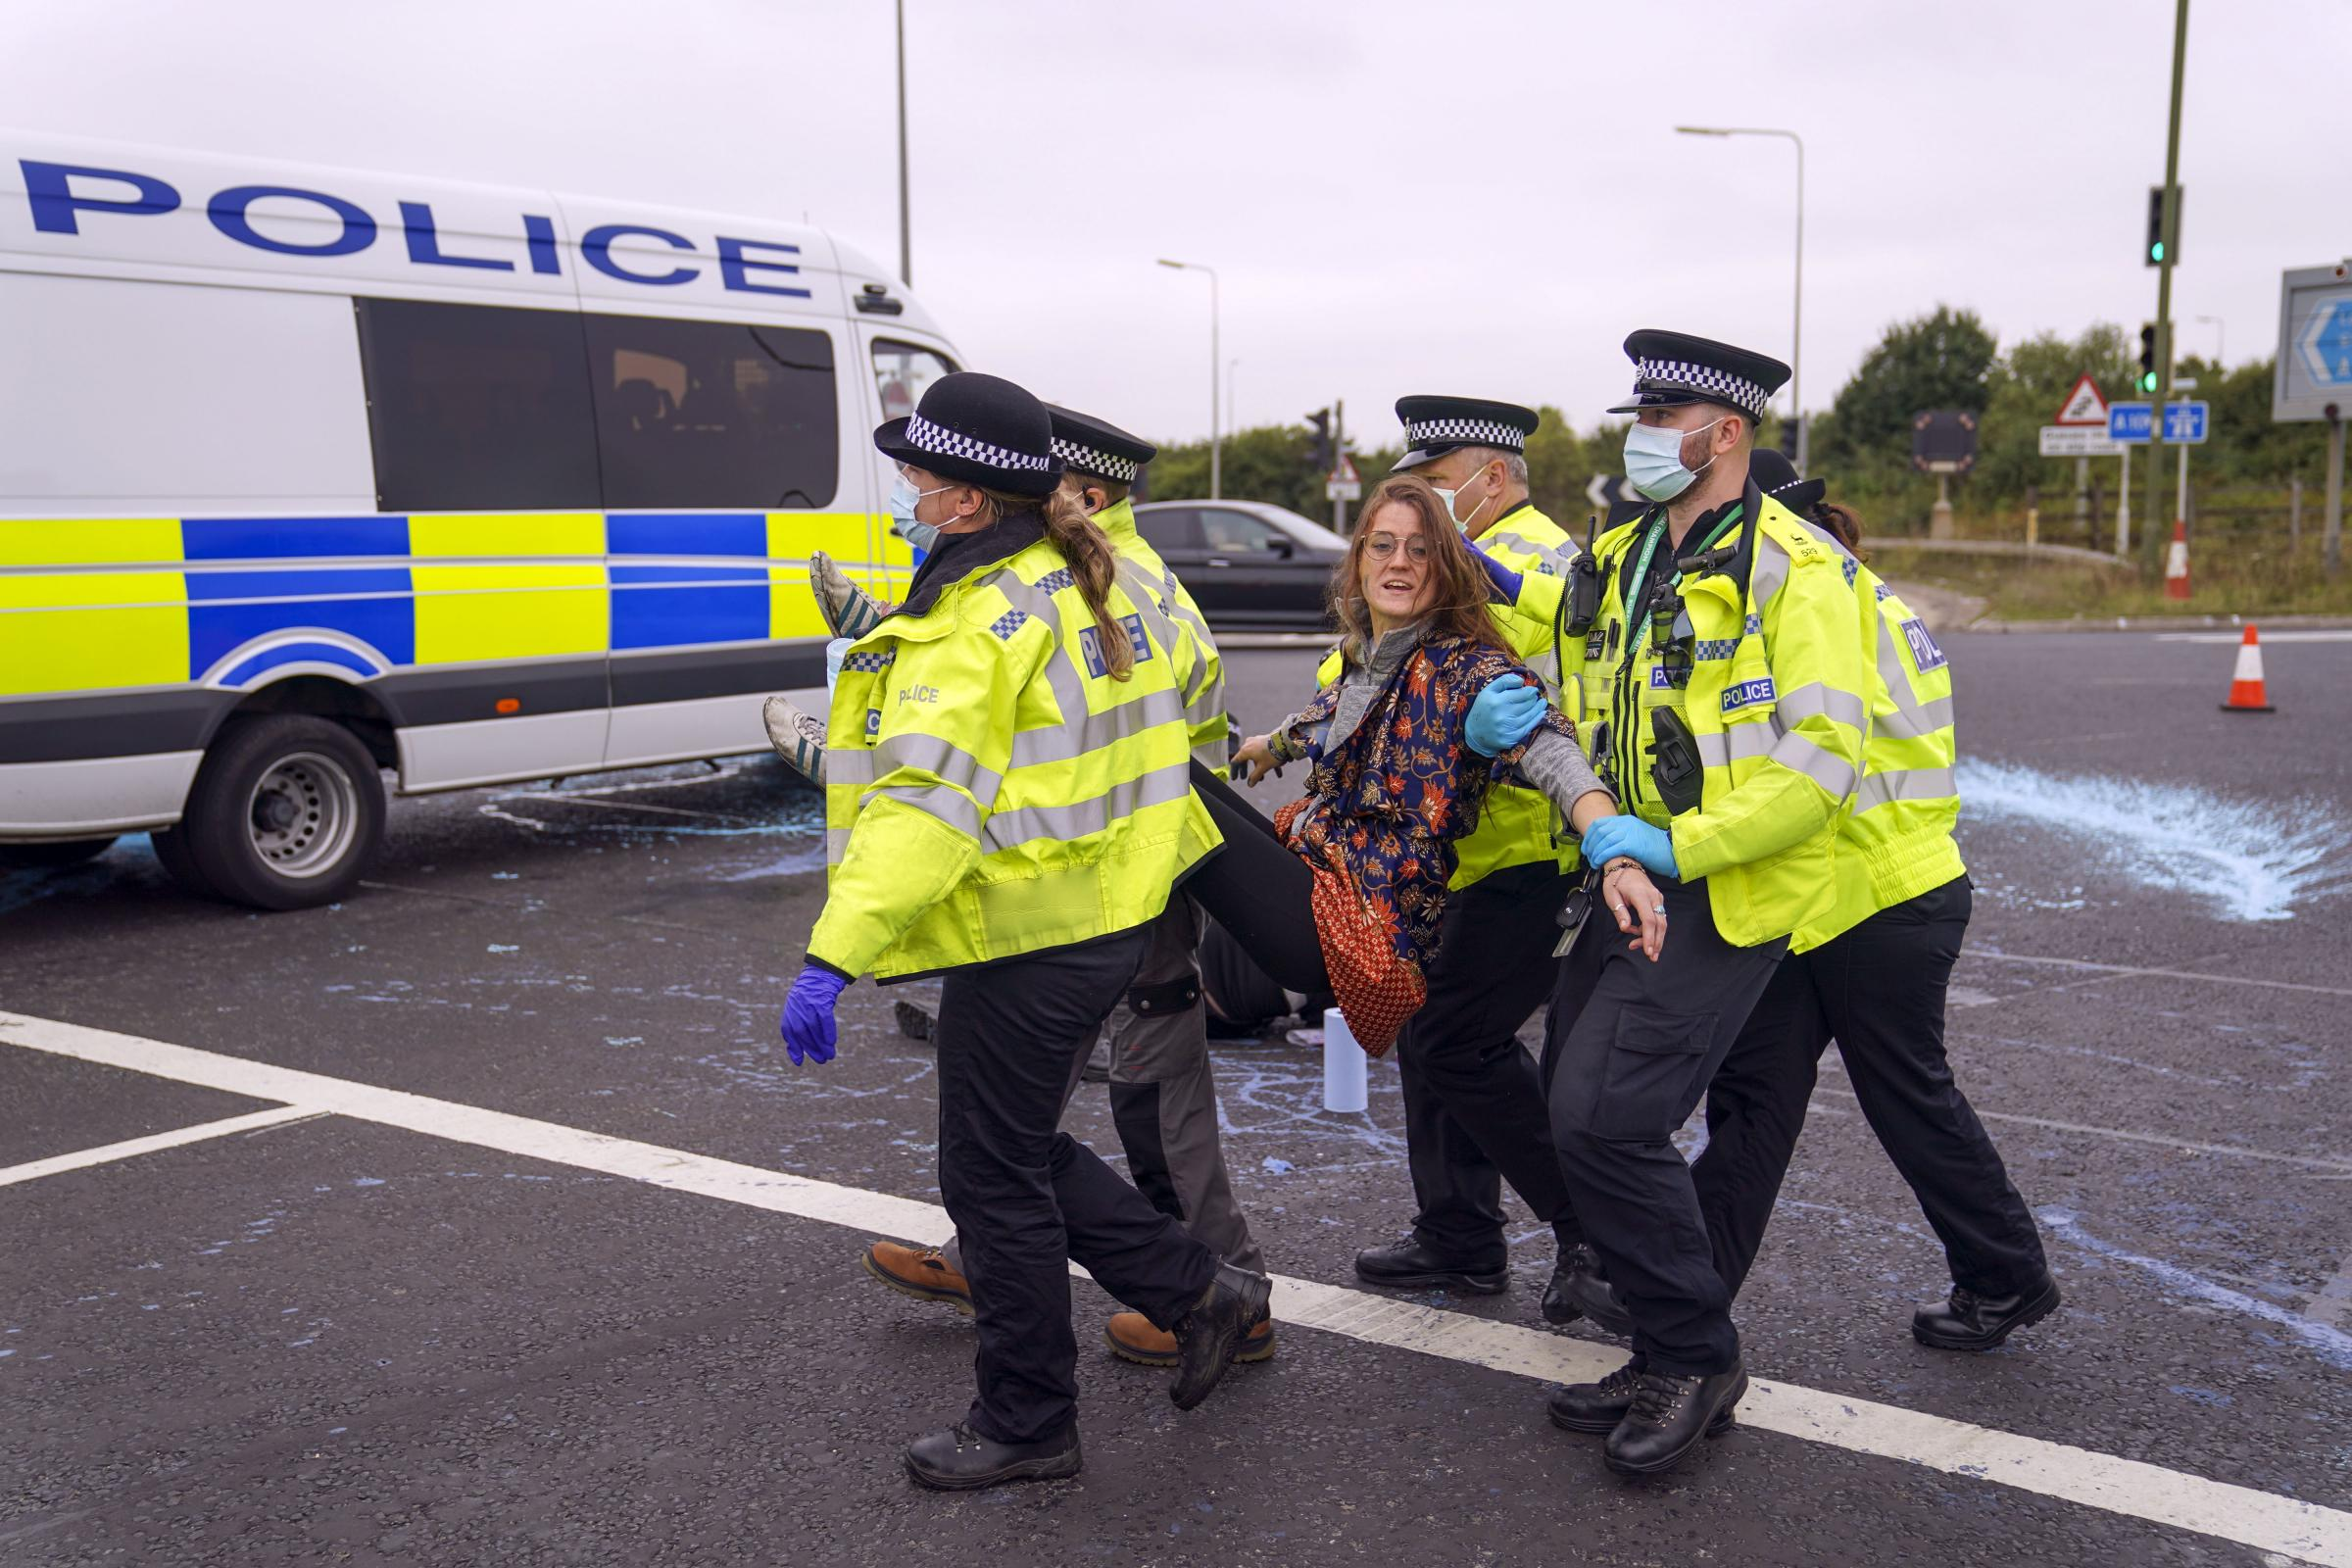 M25 protests: Police told to get tough on Insulate Britain